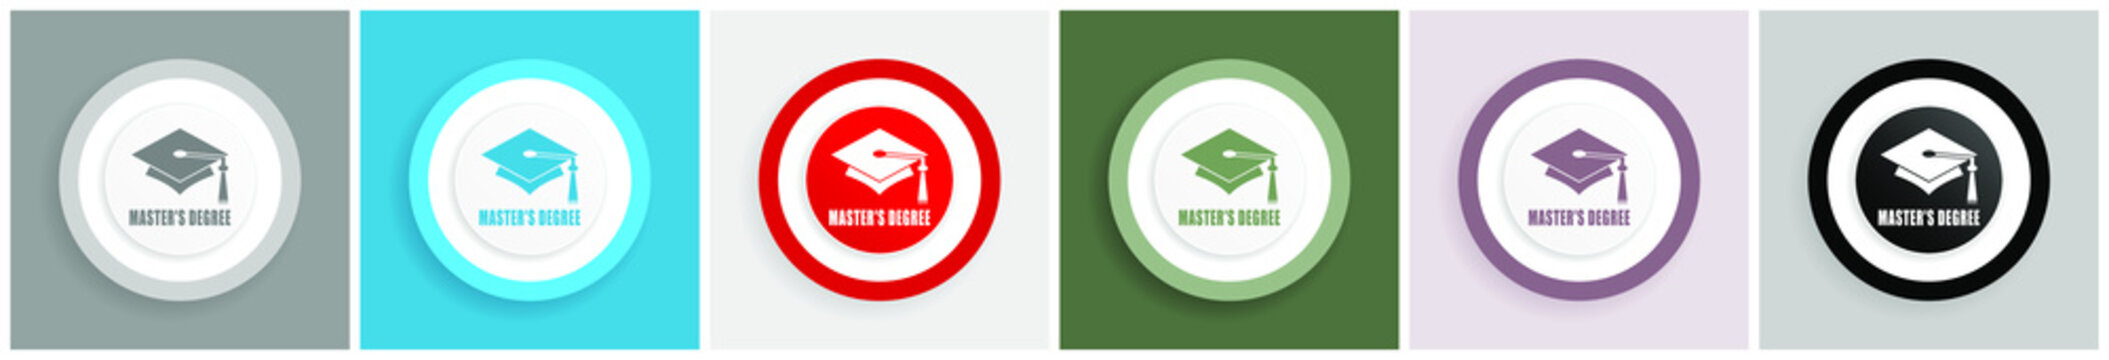 Masters degree icon set, colorful flat design vector illustrations in 6 options for web design and mobile applications